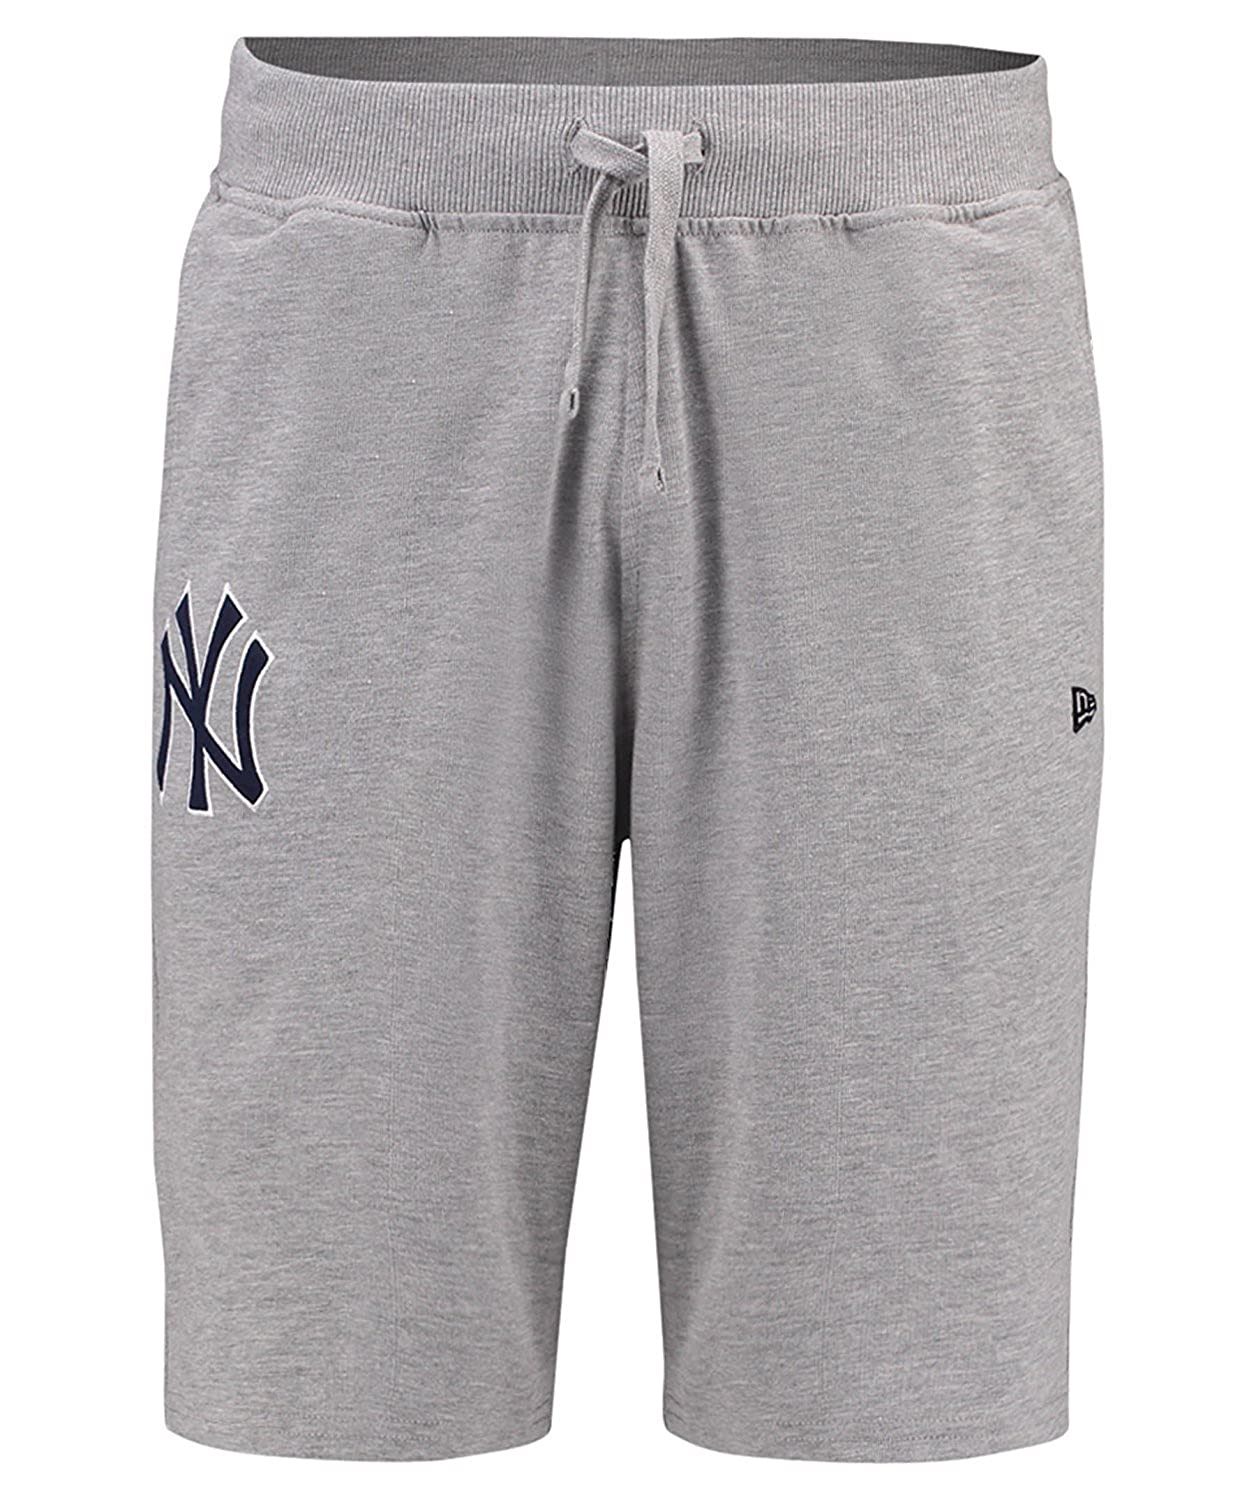 New Era MLB New York Yankees Jersey Shorts 454a4c9095a7